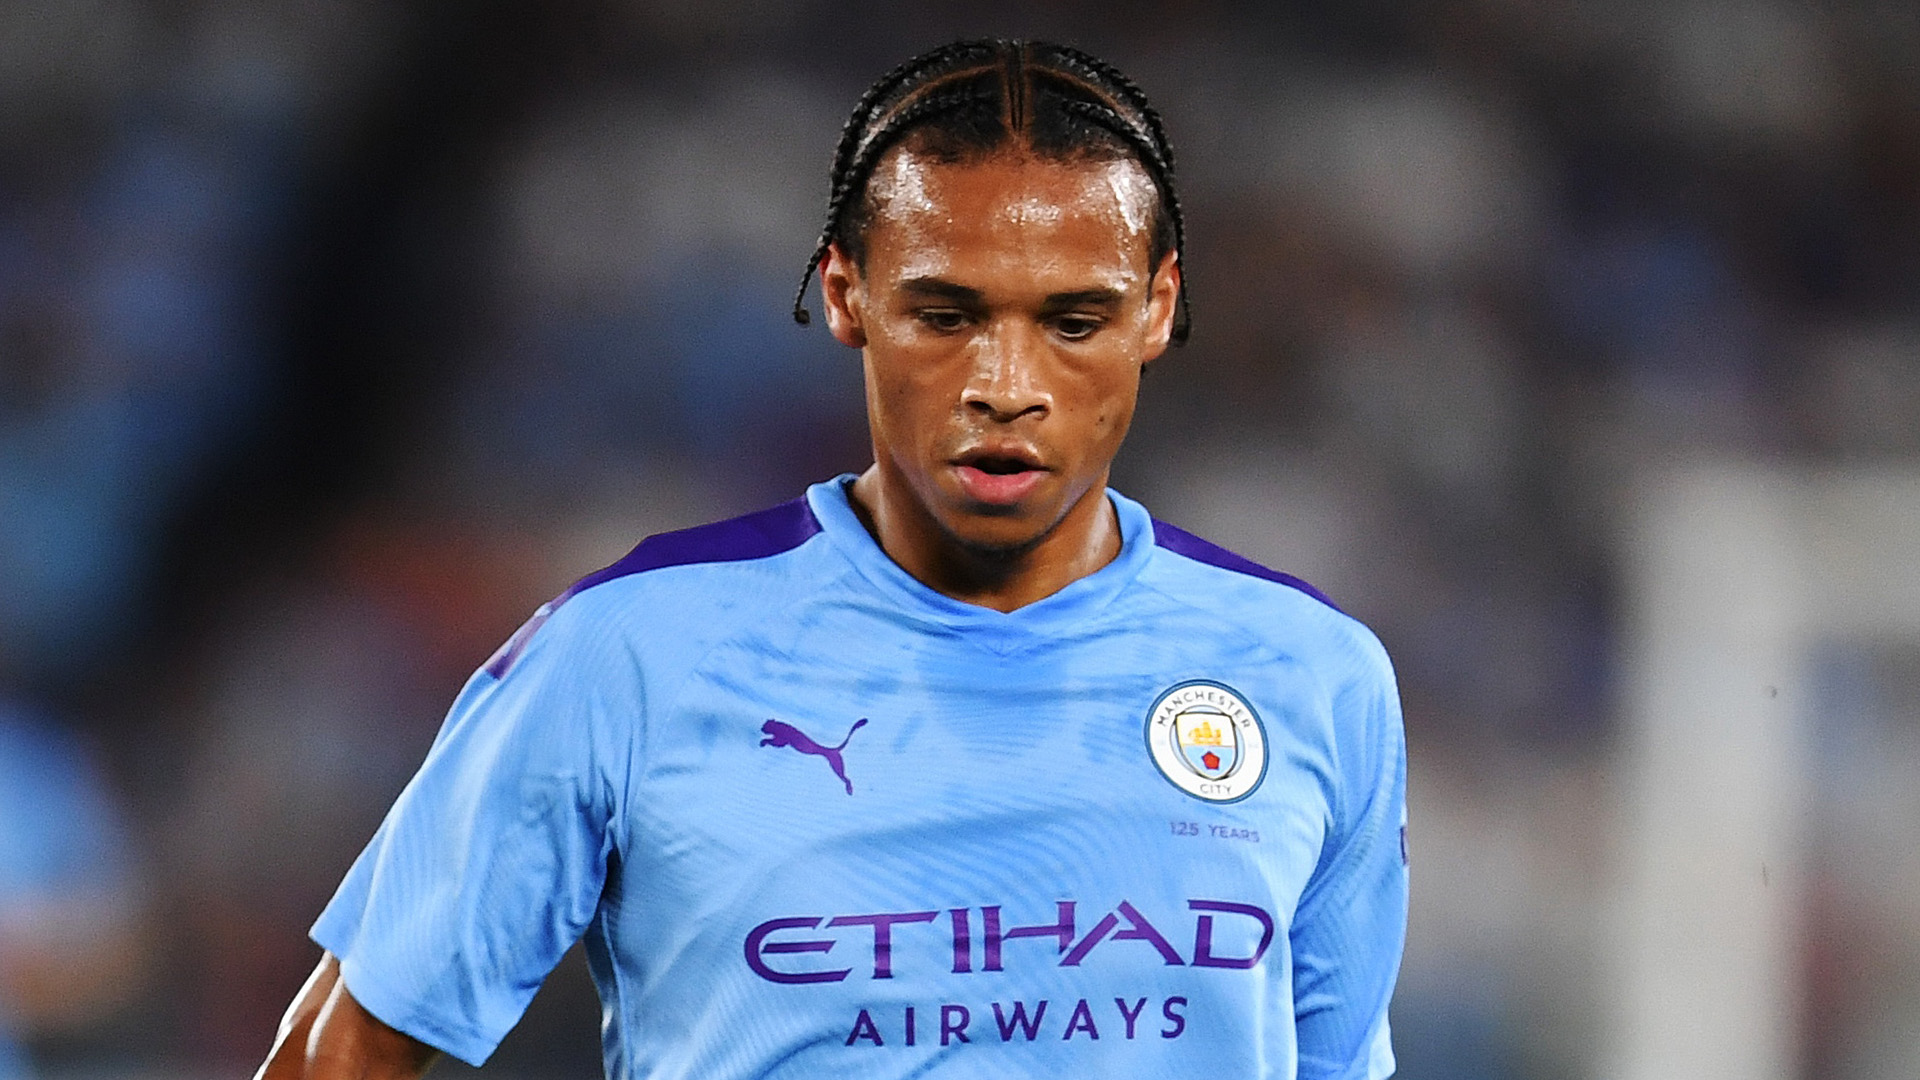 Germany boss Low confident 'incredible' Man City star Sane will be ready for Euro 2020